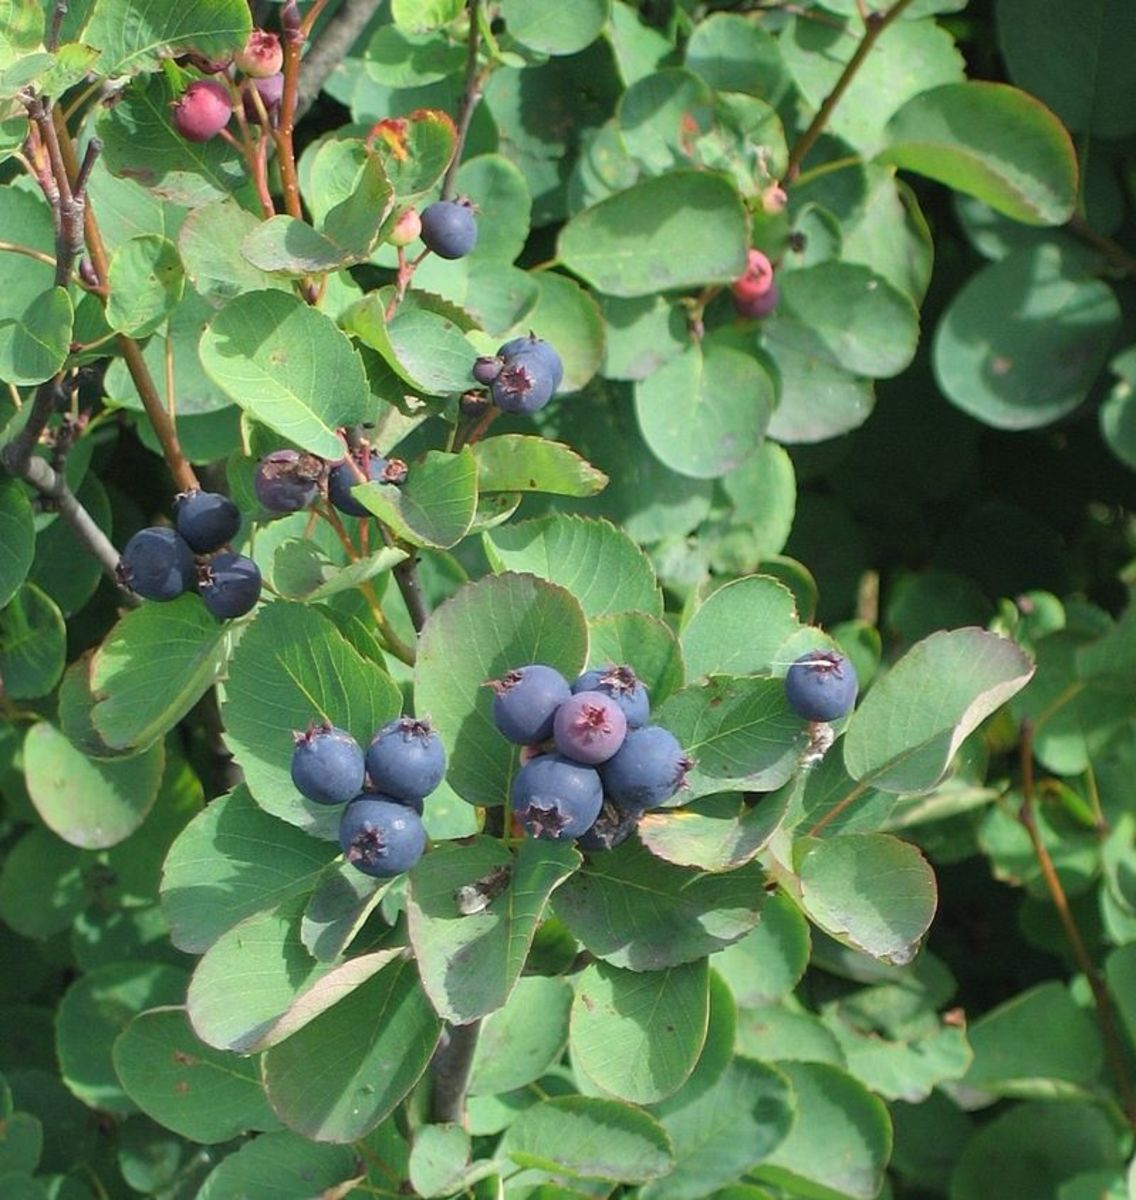 A. alnifolia berries.  They look and taste like blueberries.